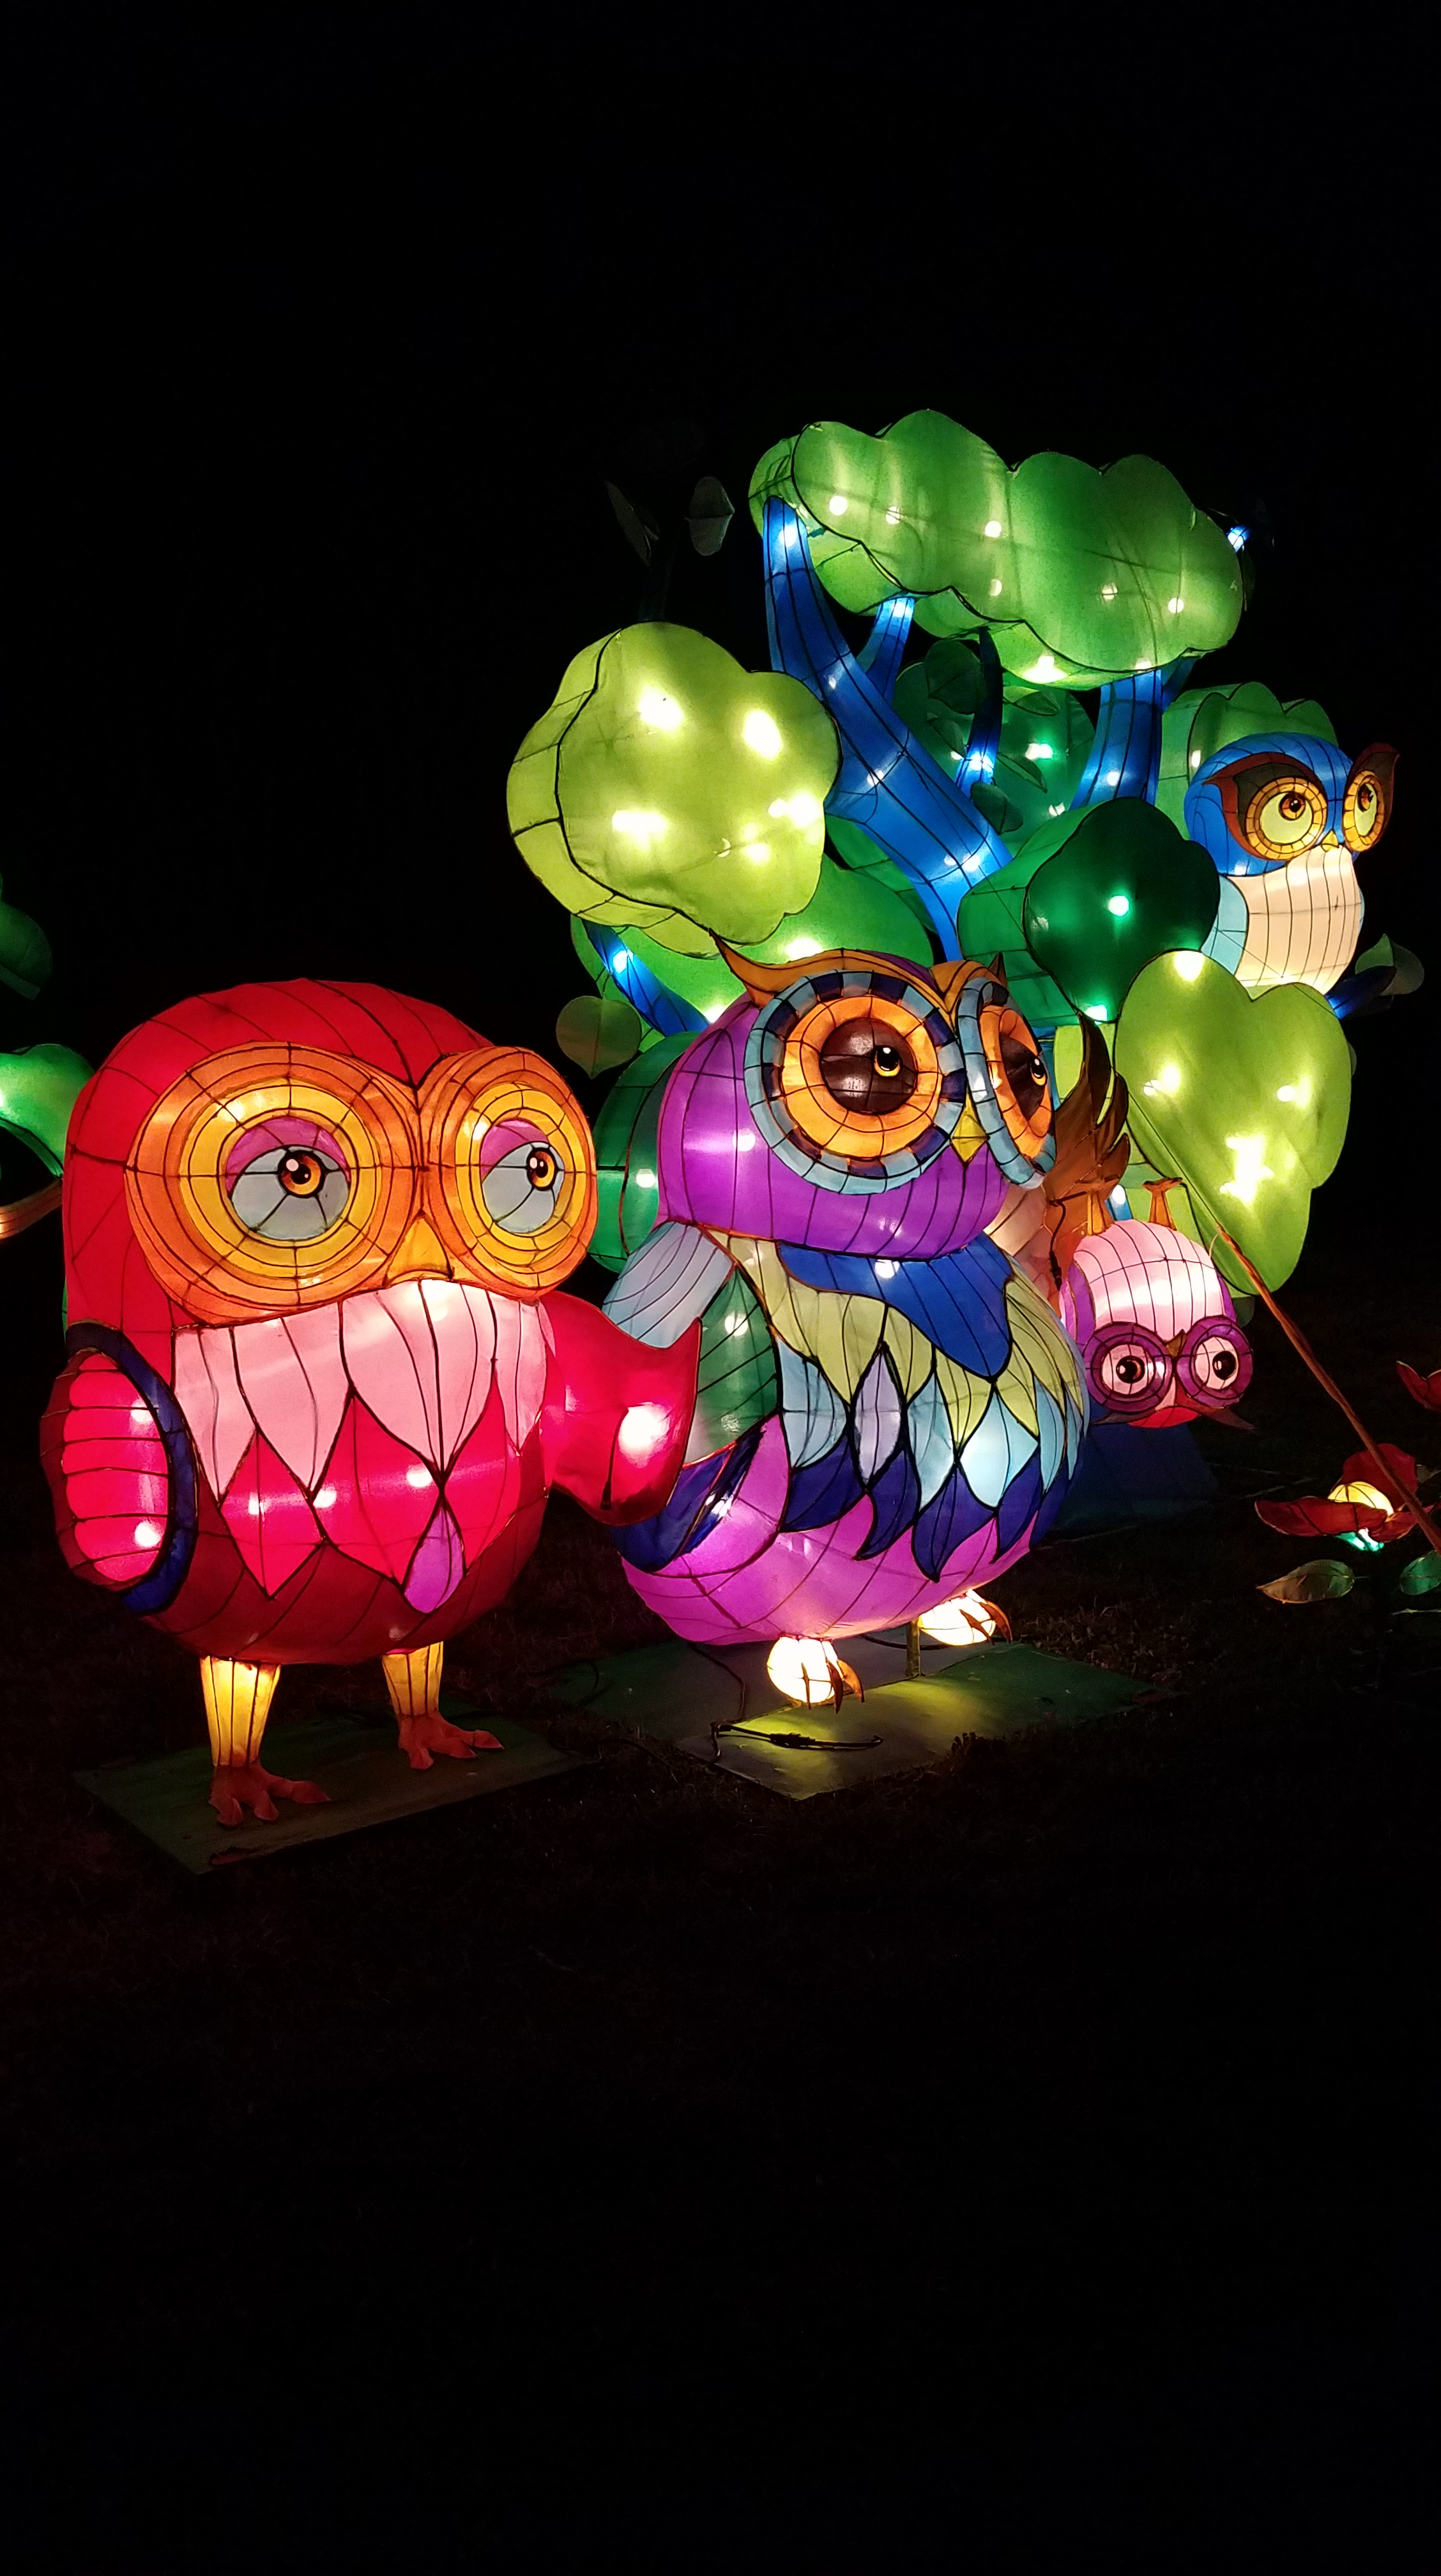 On display through May 13, Norfolk Botanical Garden's{ }LanternAsia exhibition consists of more than 40 colossal lanterns including a 200 foot long colorful dragon and a four-story pagoda{ }made from a million pieces of porcelain. (Image: Troy Petenbrink)